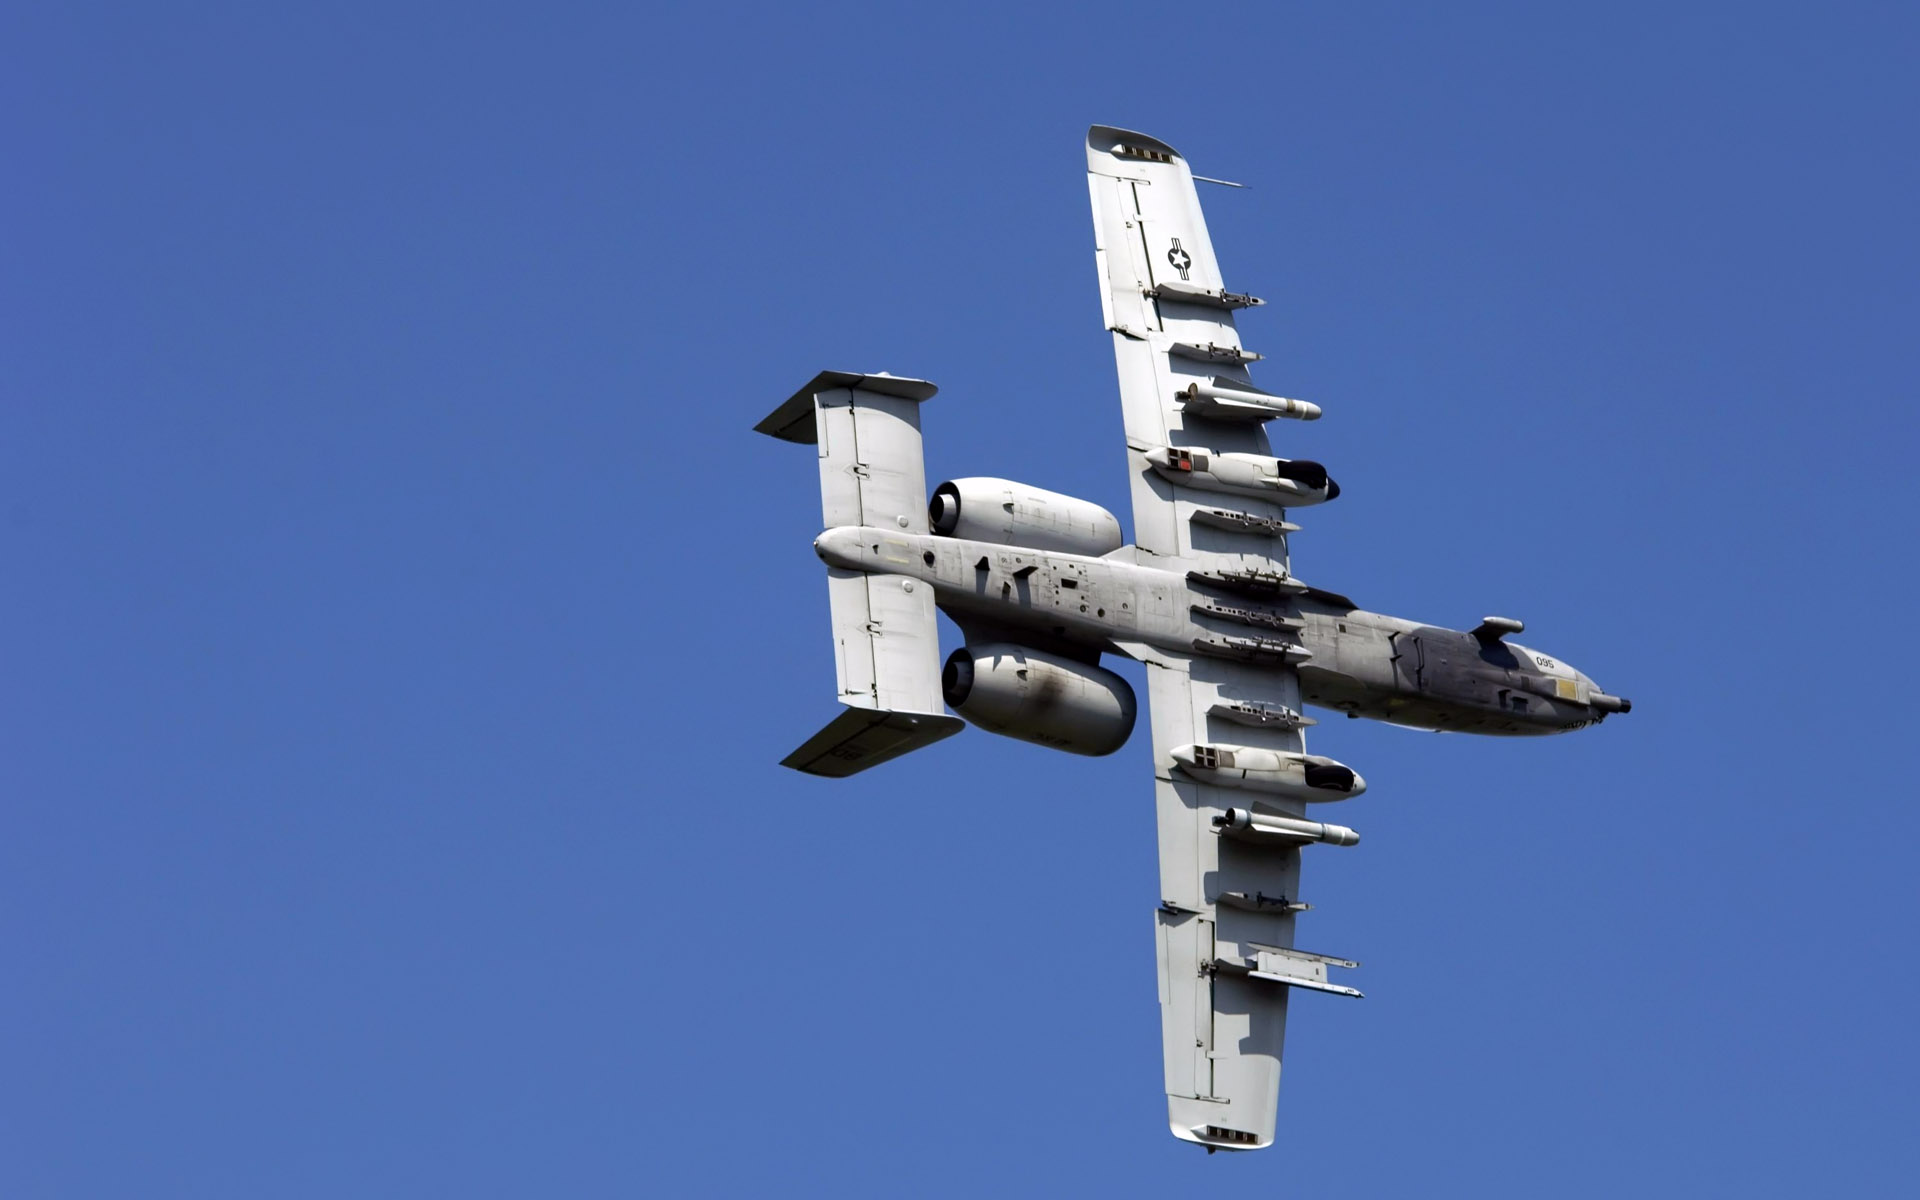 A 10 Thunderbolt Approaching Target9527711443 - A 10 Thunderbolt Approaching Target - Thunderbolt, Target, Approaching, Airforce